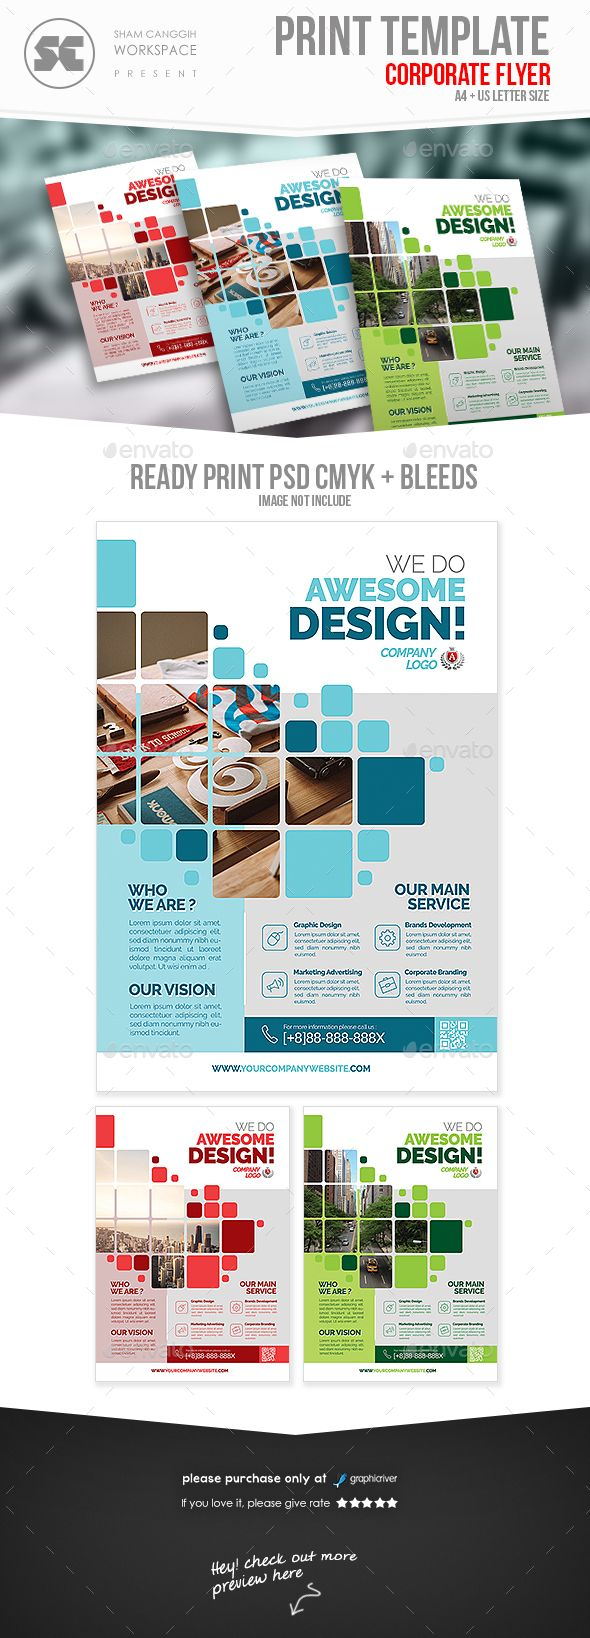 Corporate Business Flyer — Photoshop PSD #print ready #product • Available h...